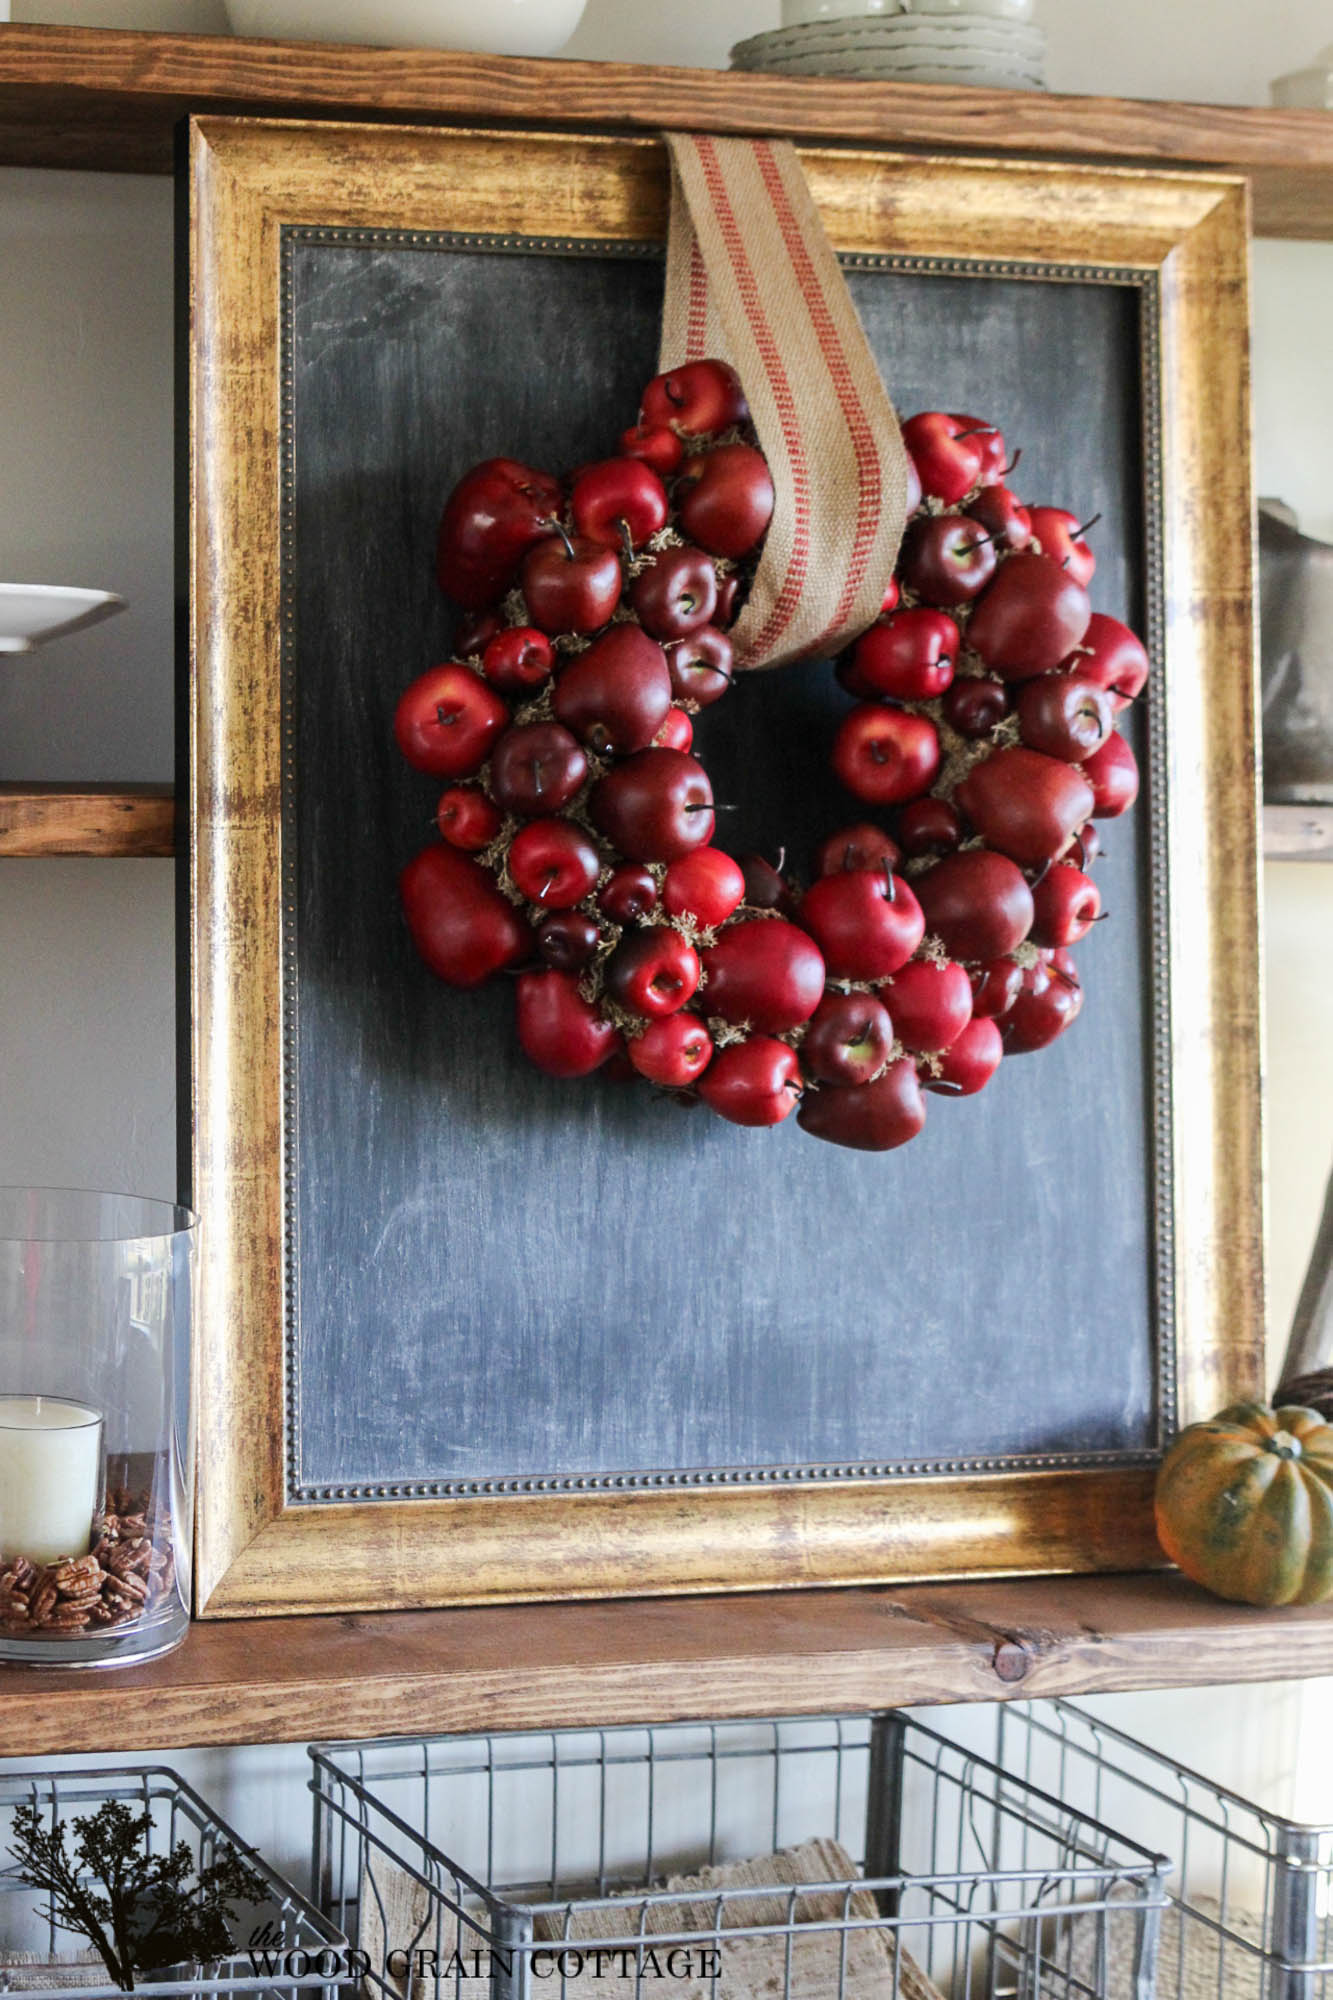 This fall wreath made from apples is unique and festive.